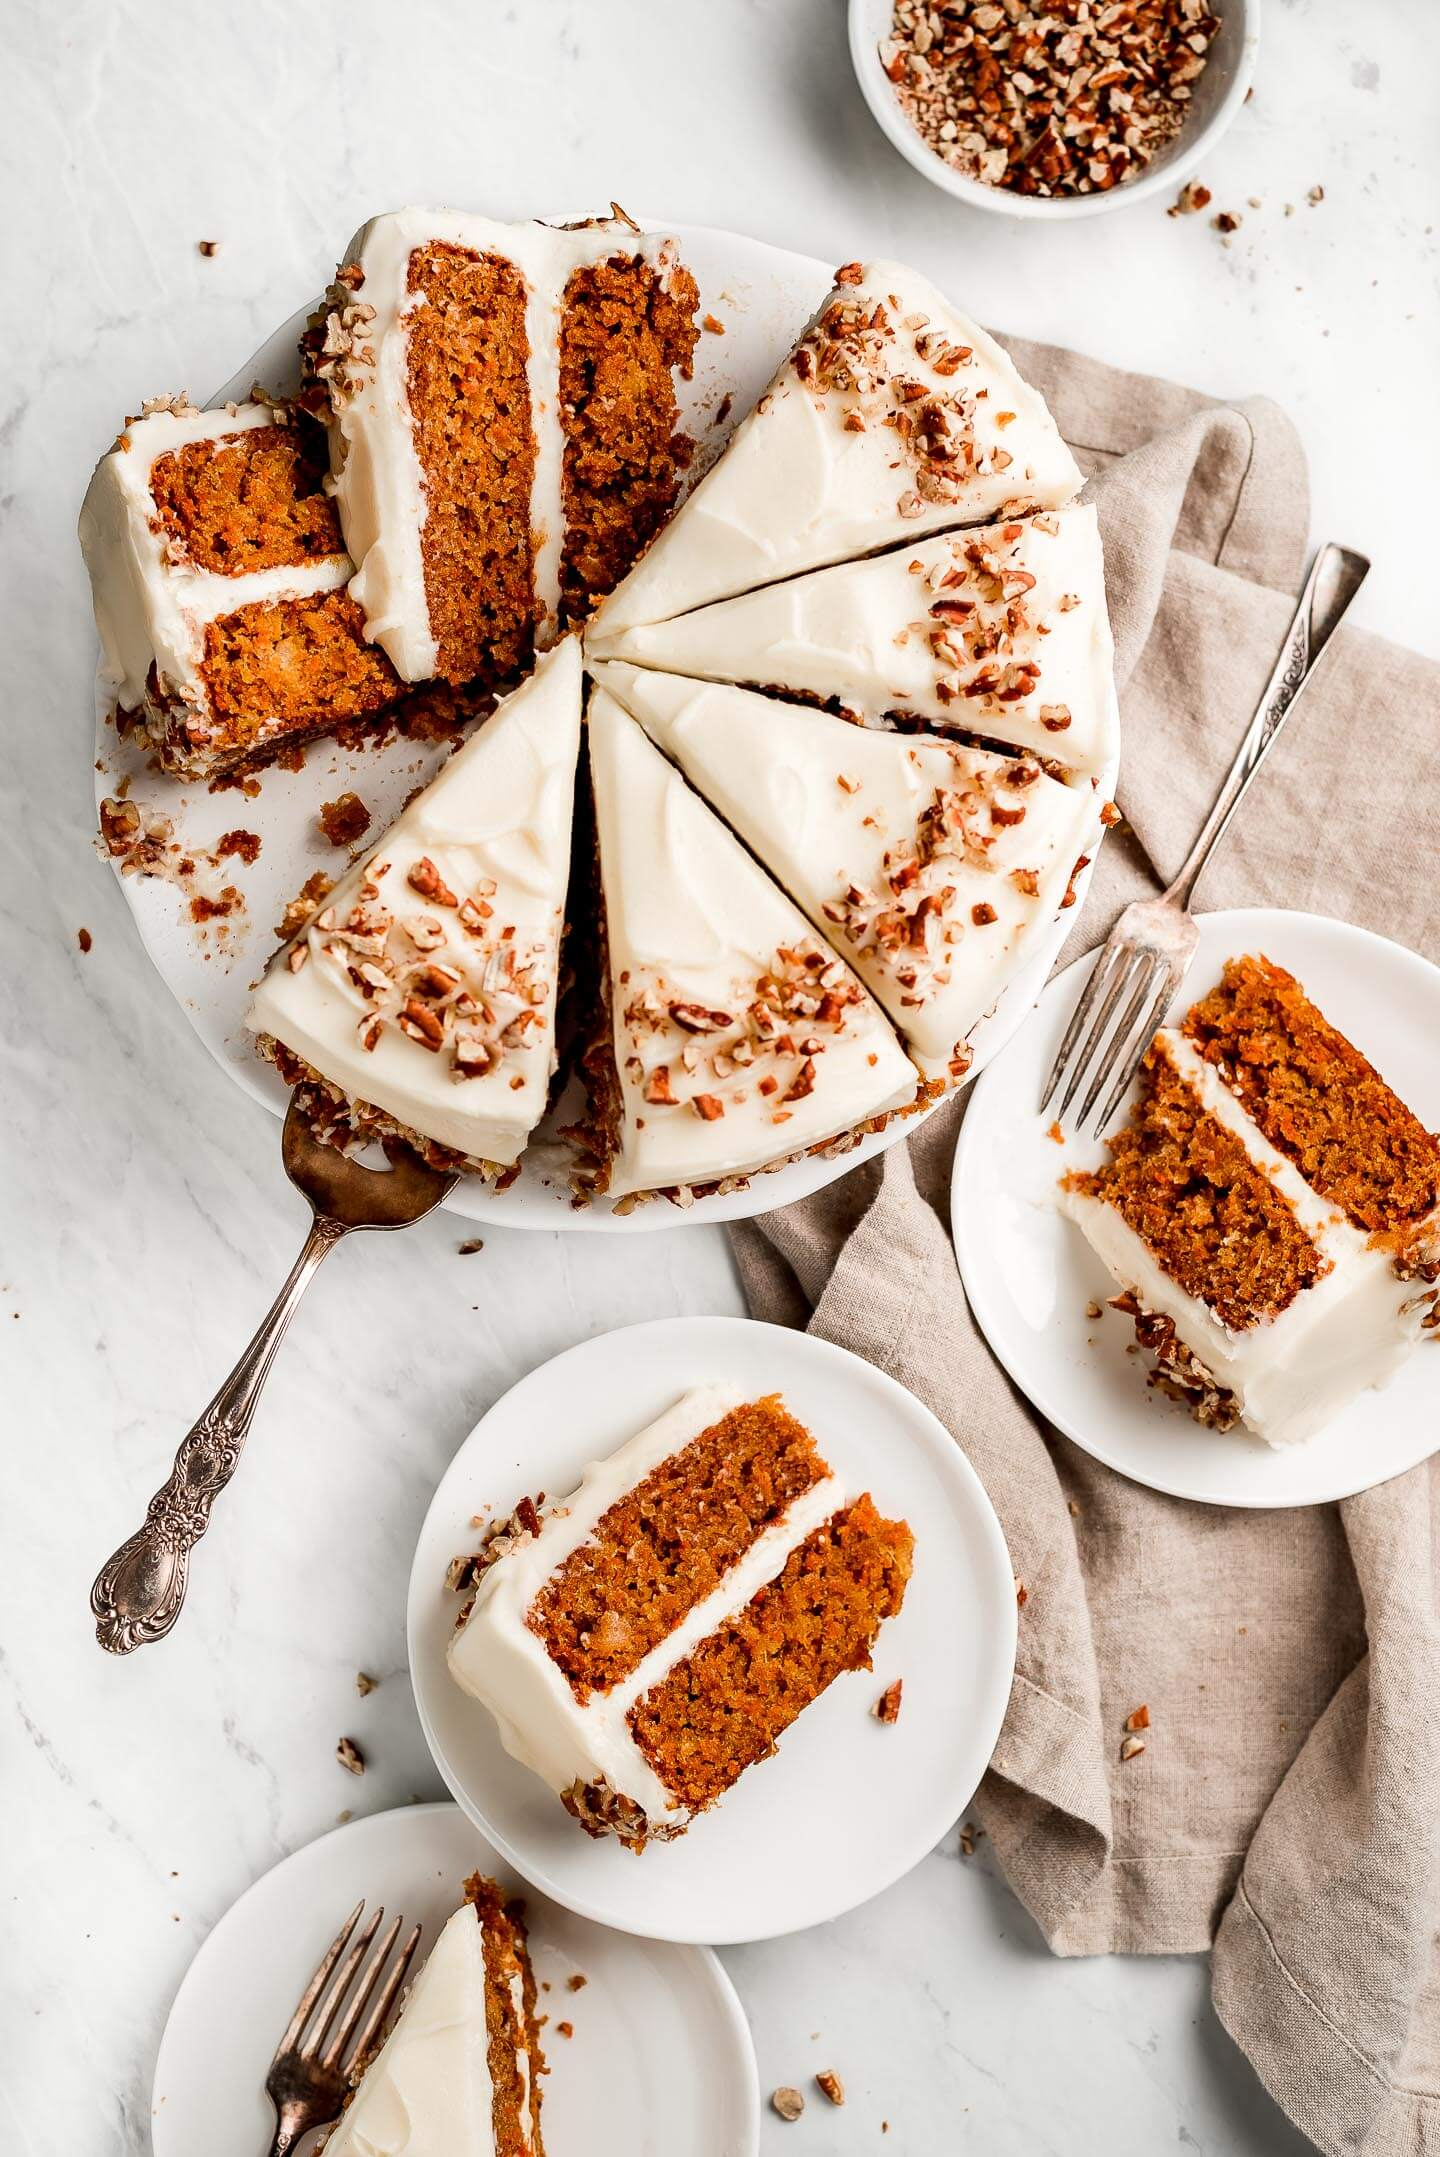 Carrot Cake sliced up on a cake stand and some pieces on plates.